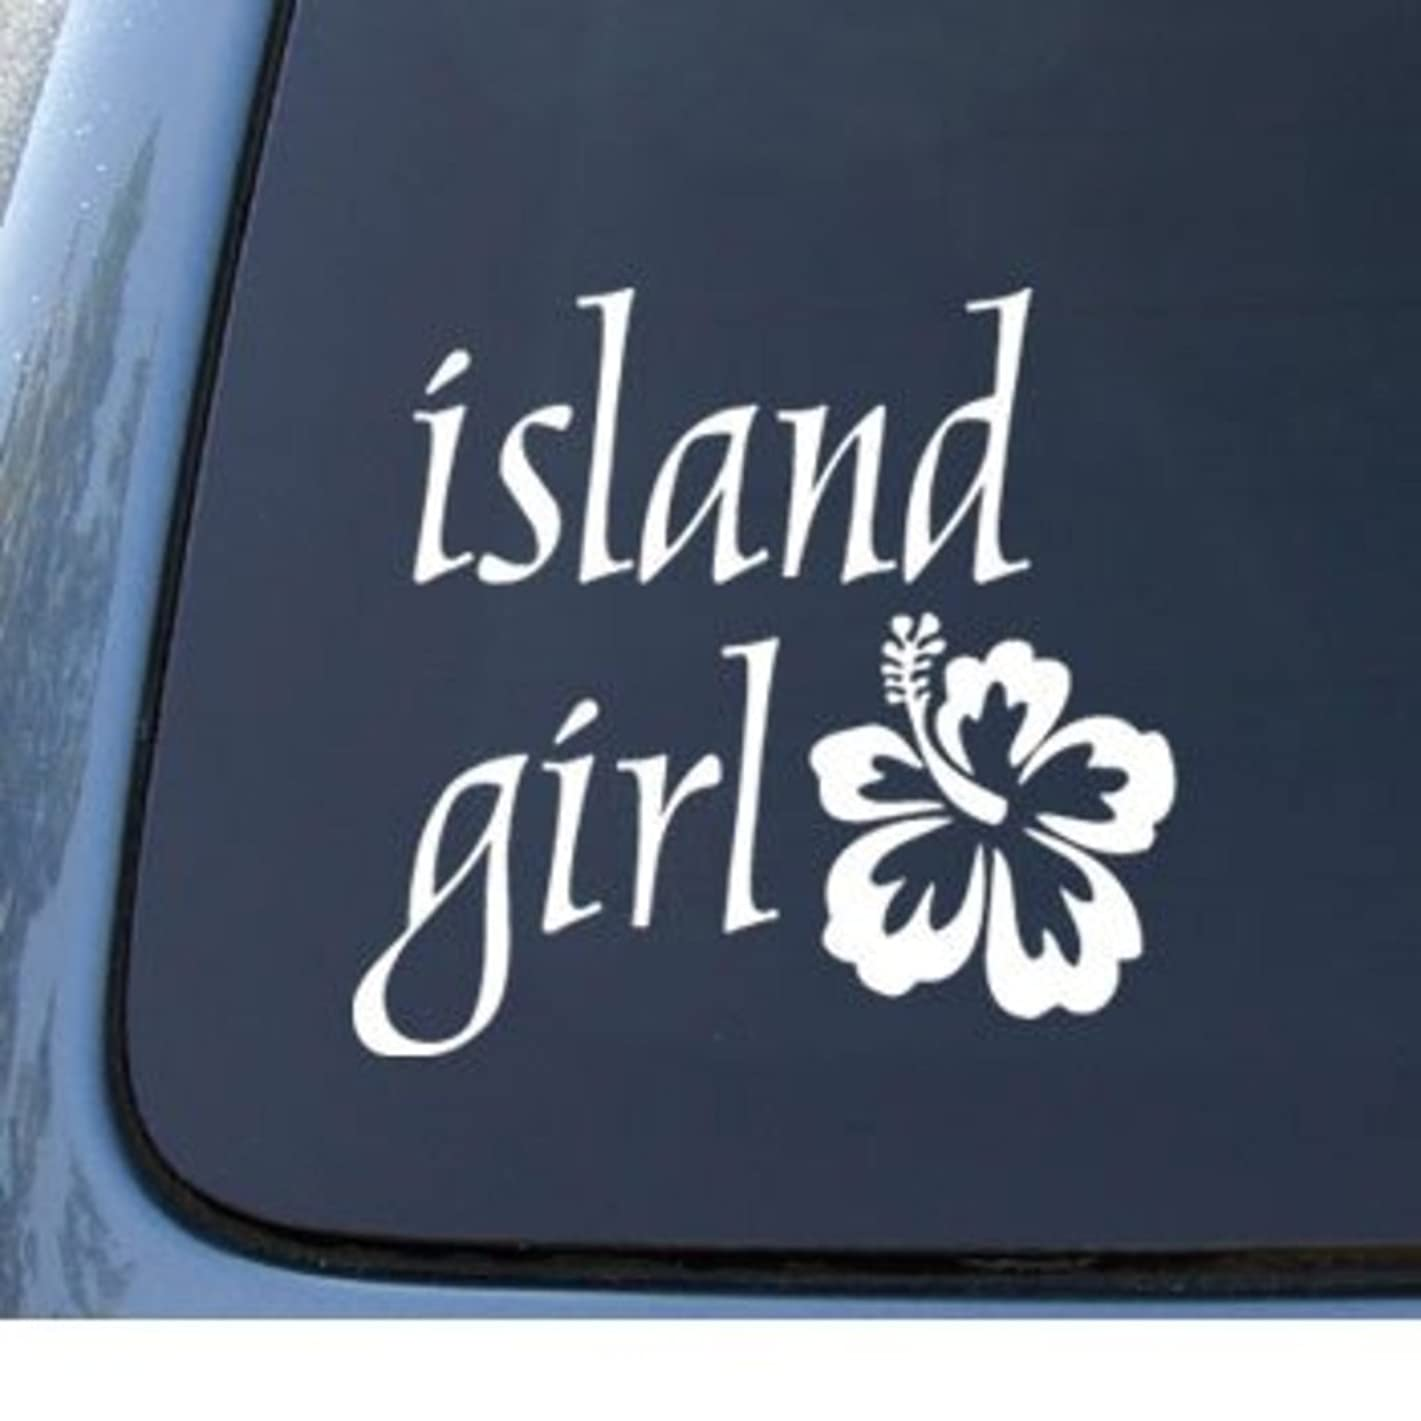 CMI543 Island Girl & Hawaii Hibiscus Flower Decal | Premium Quality White Vinyl Decal | 5.5